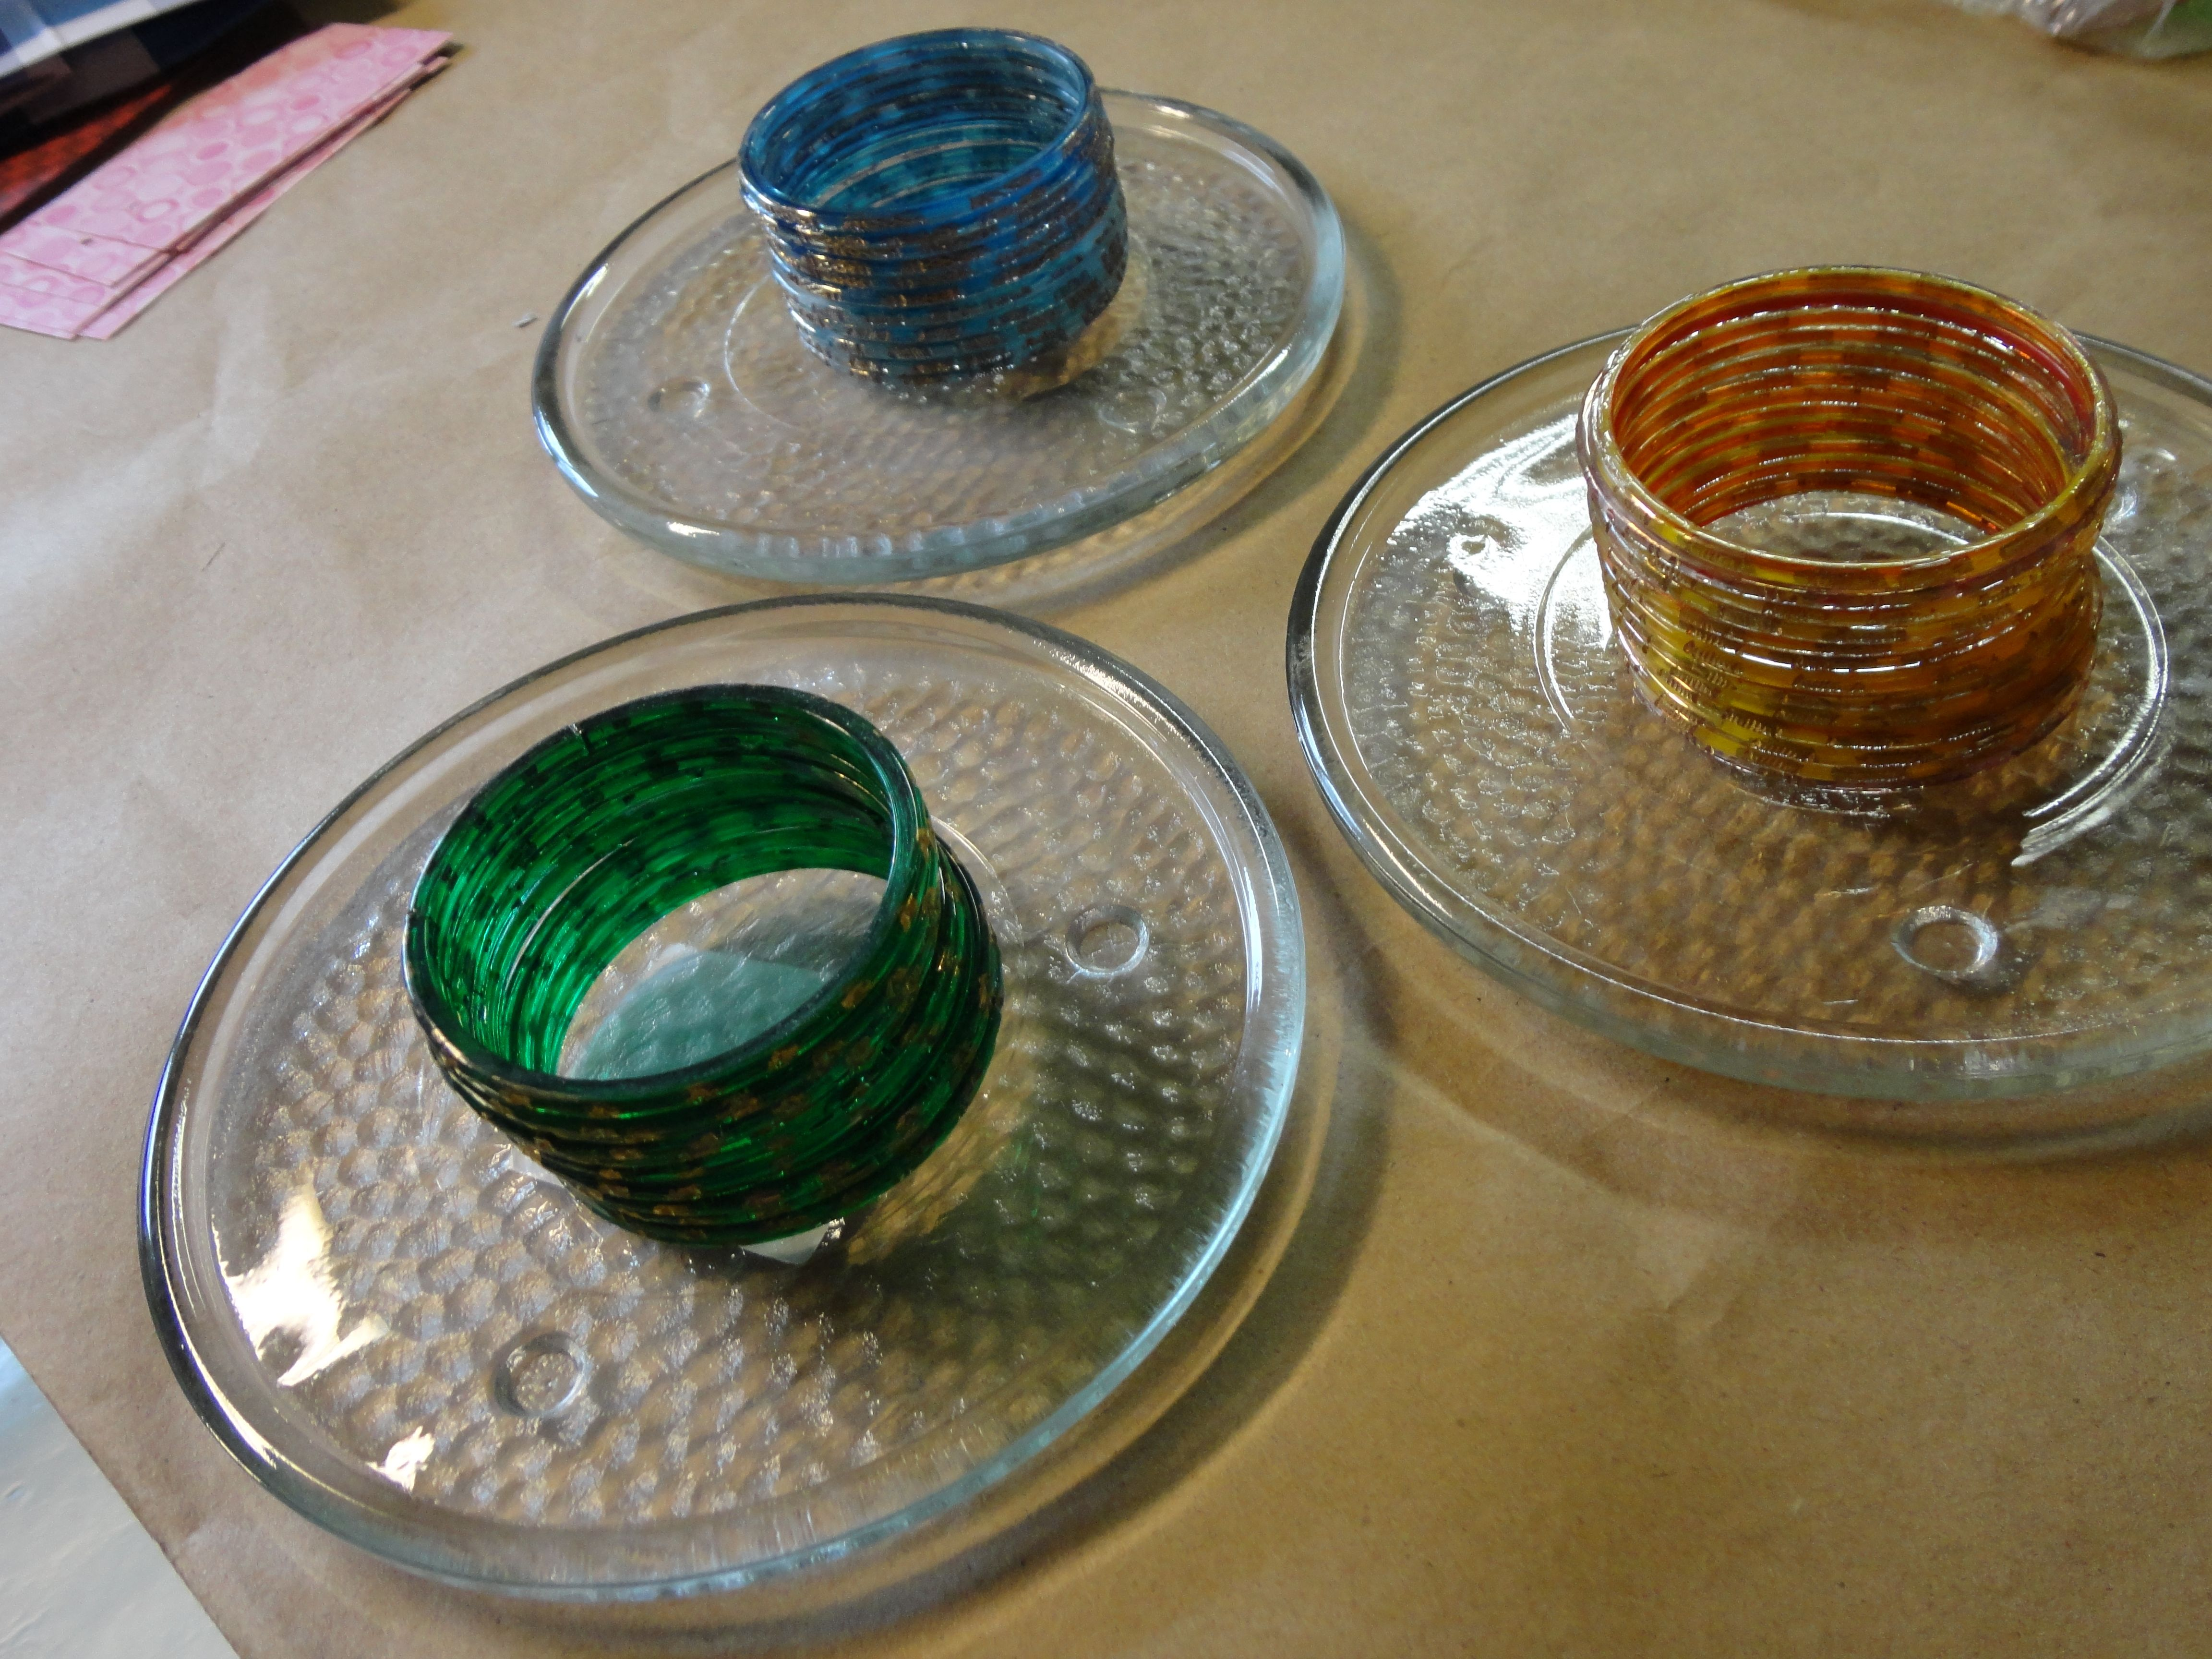 Making votives using glass bracelets and plates.